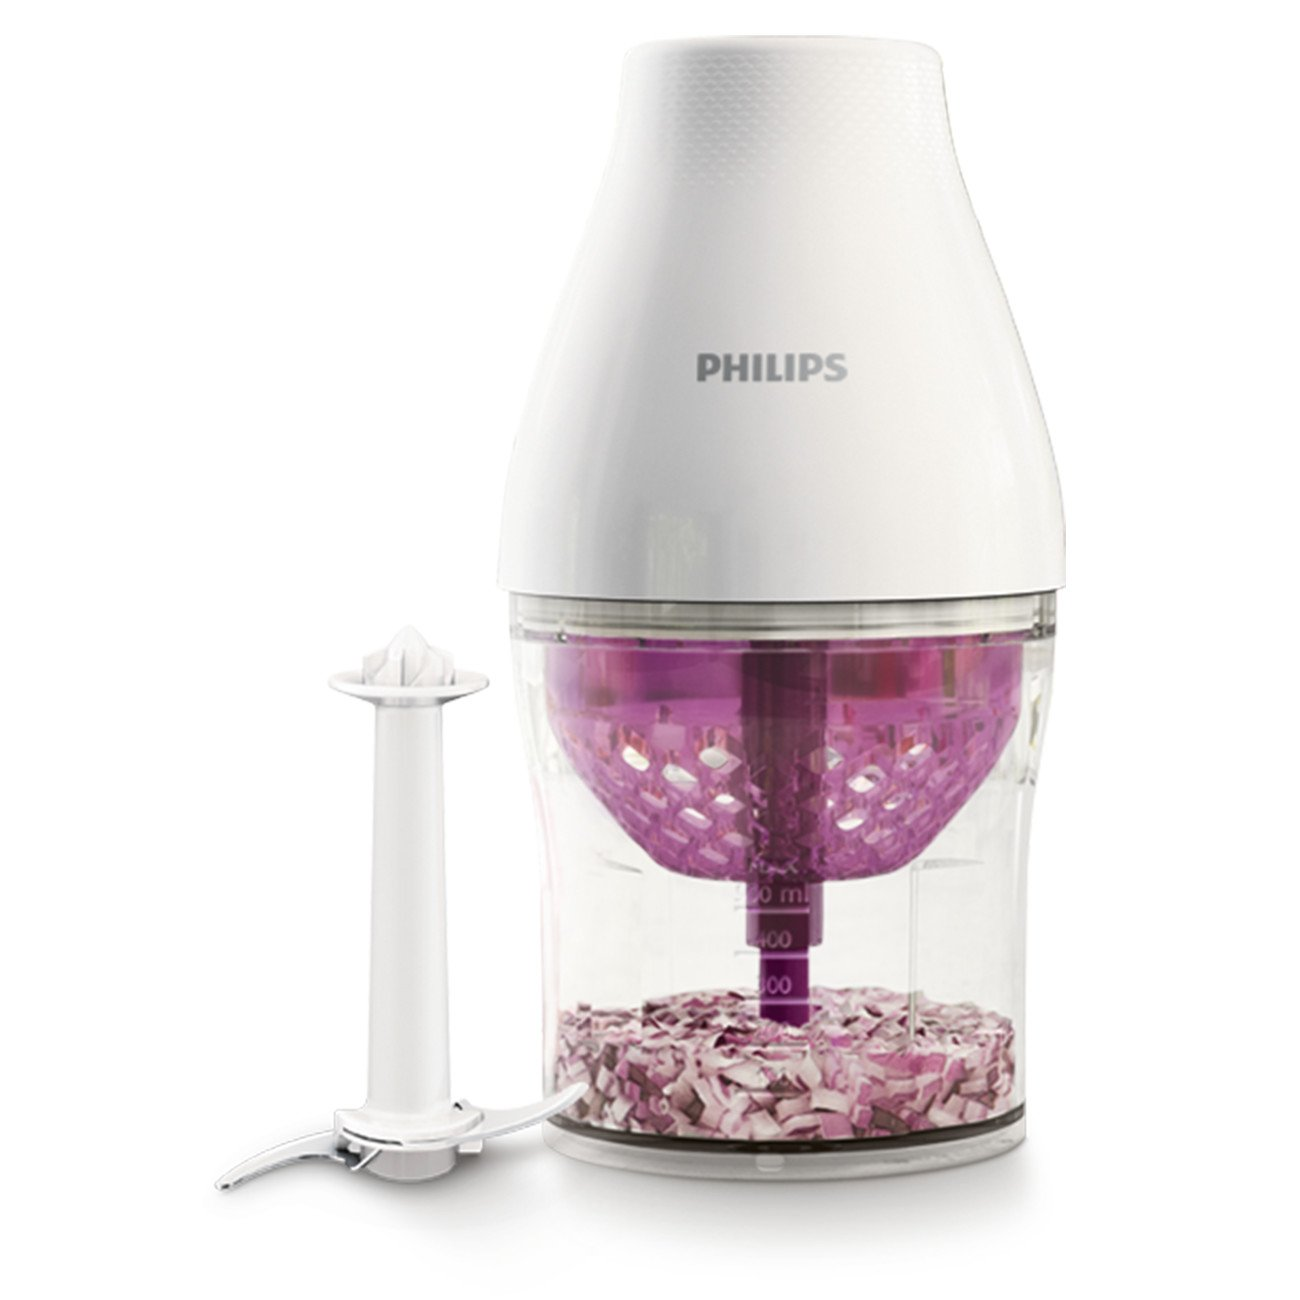 Philips HR2505/56 Multichopper with Chop Drop Technology, 1 Liter, White